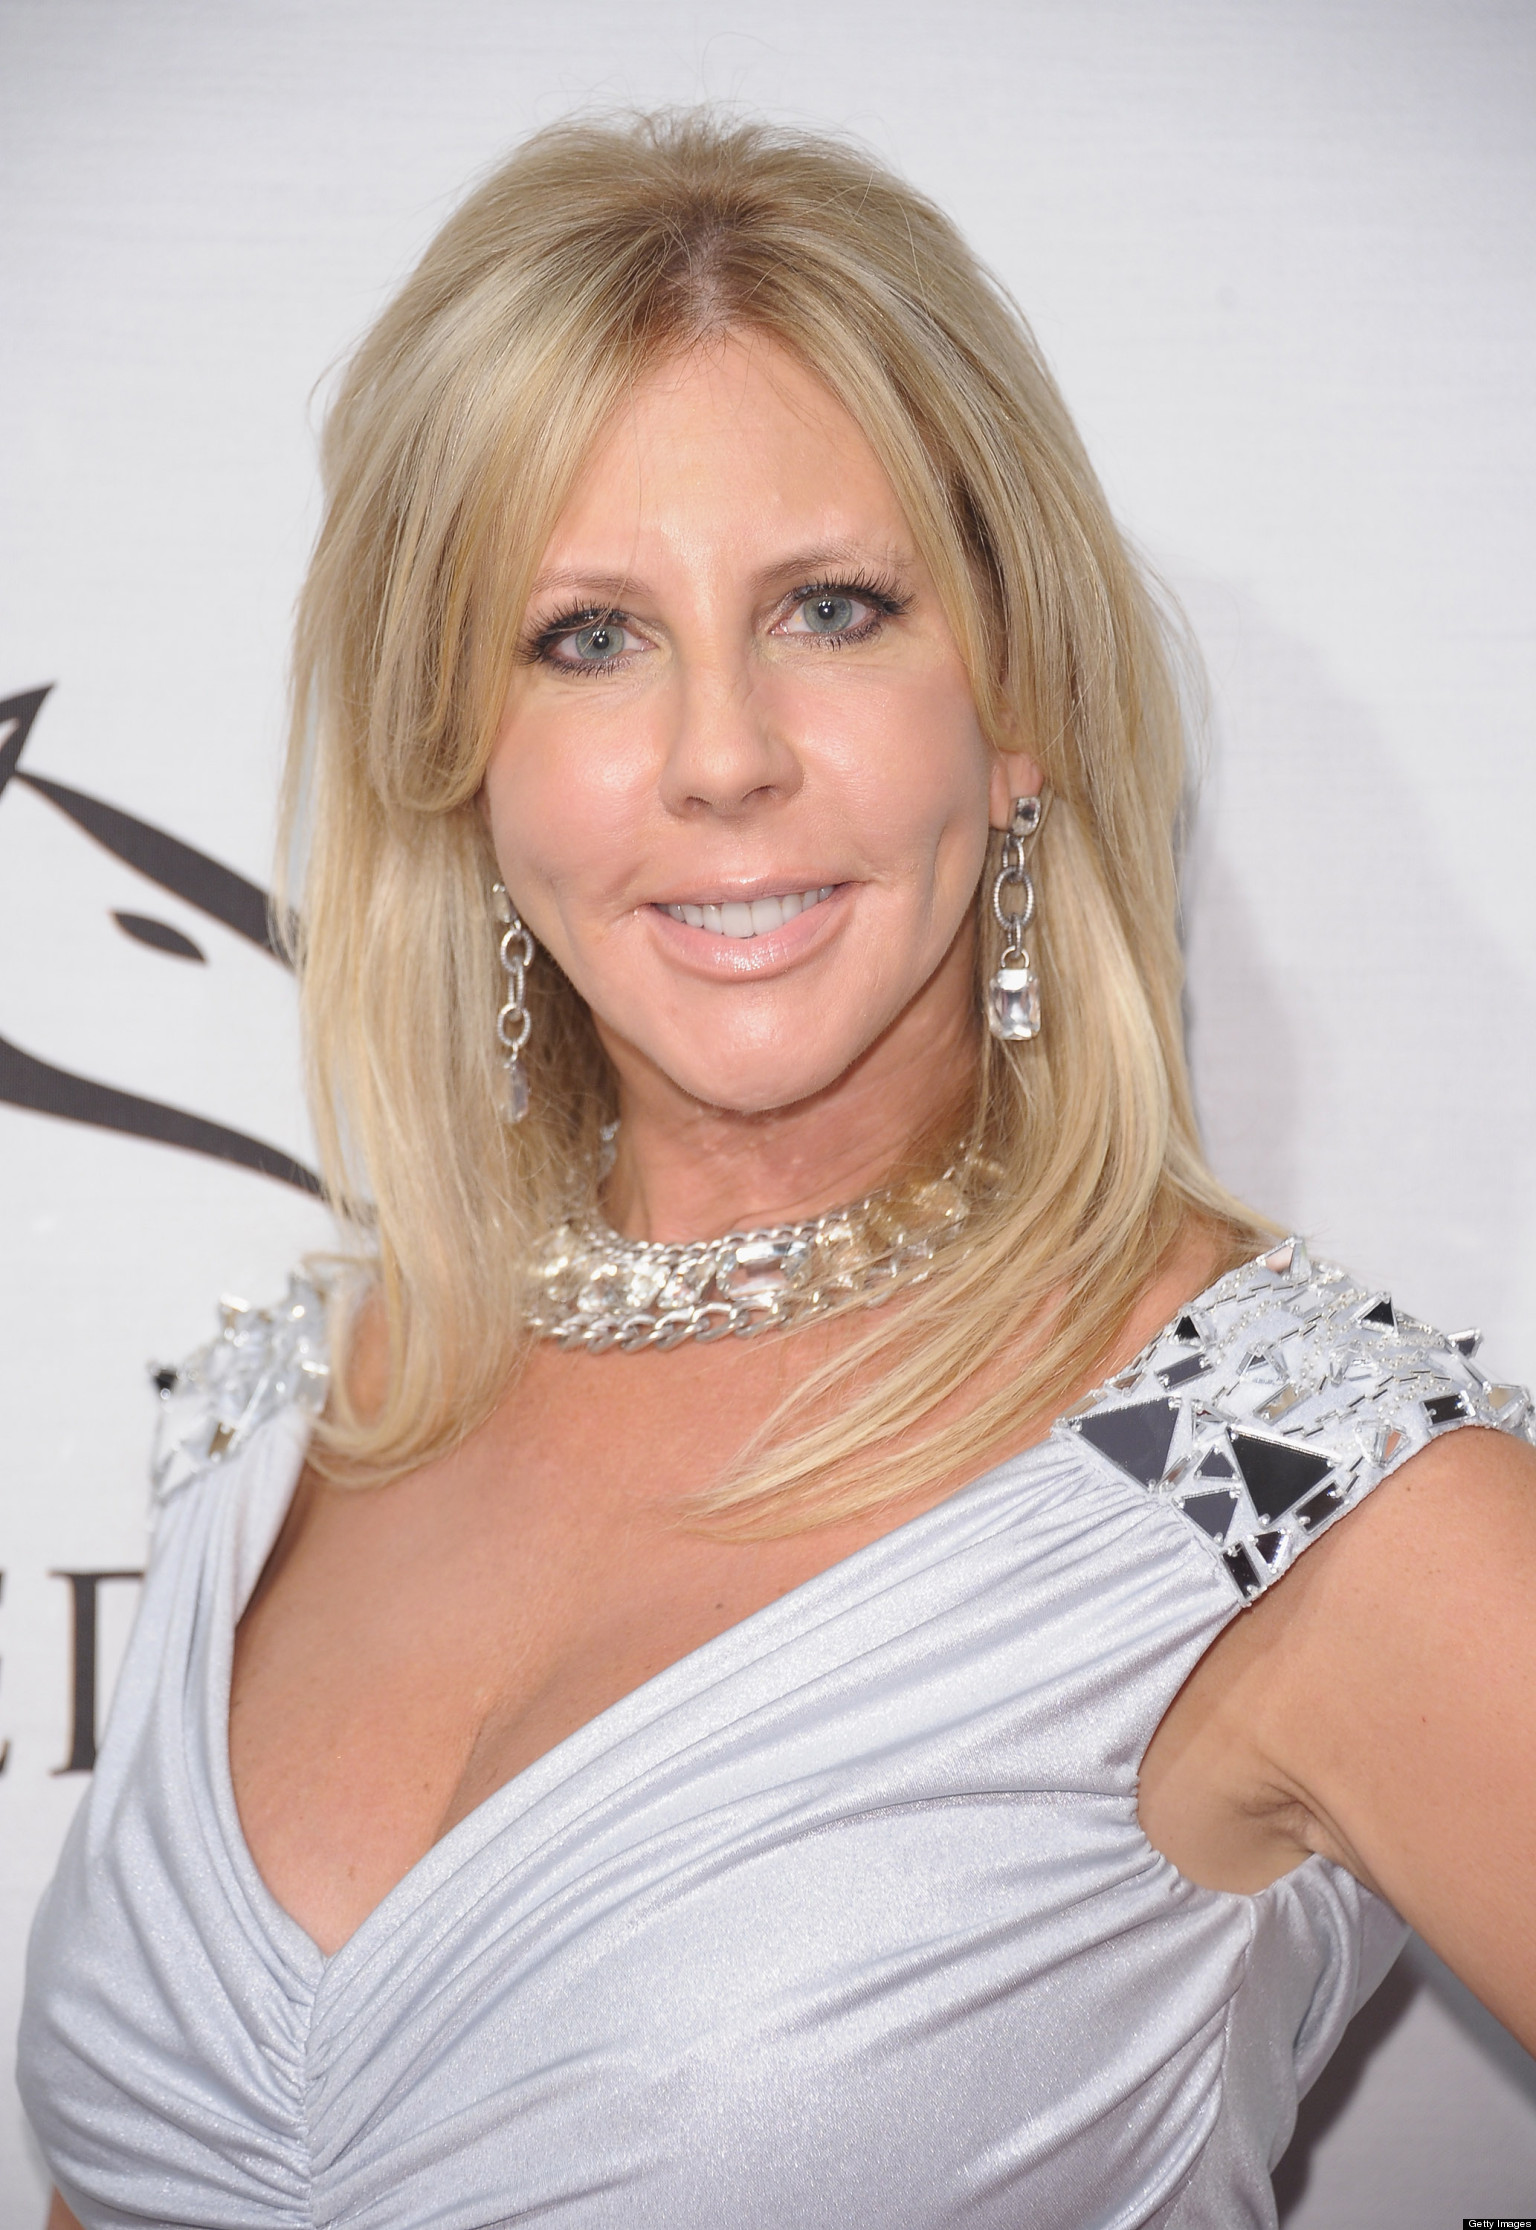 Orange County Teen Model: Vicki Gunvalson Plastic Surgery: 'Real Housewives' Star